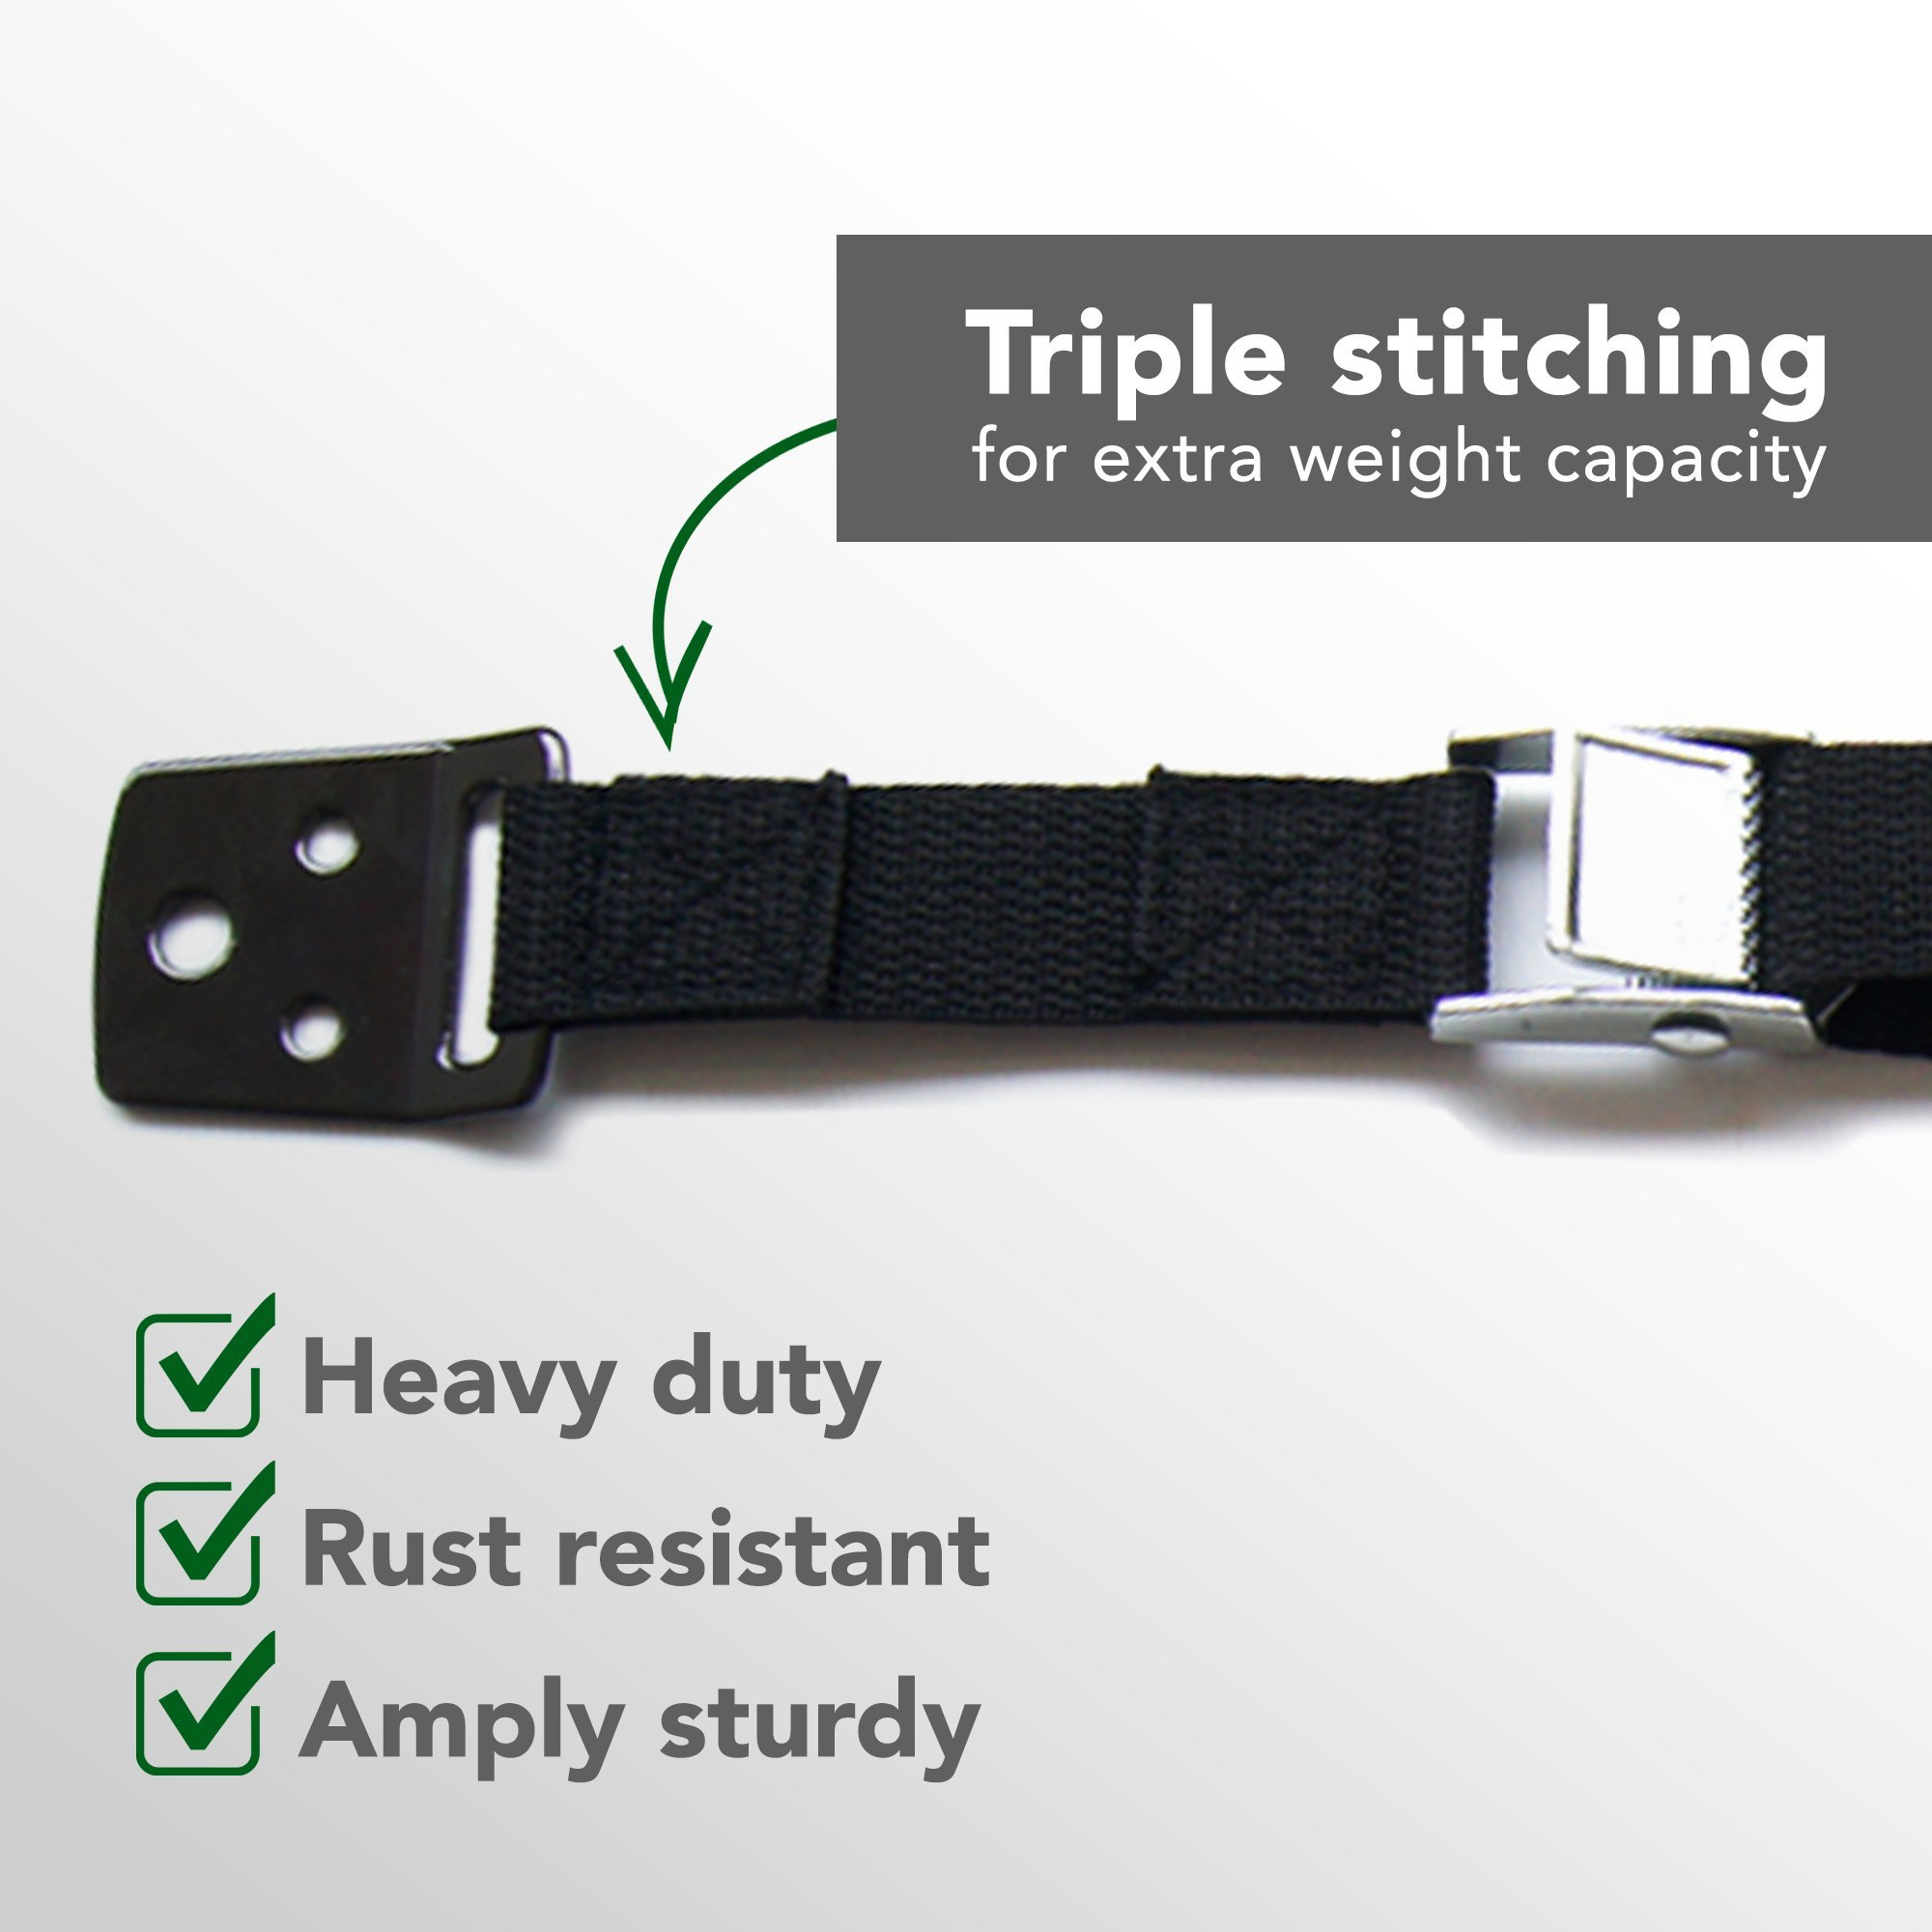 Earthquake proof resistant strap CALIBER Anti-tip straps for Tv and Furniture